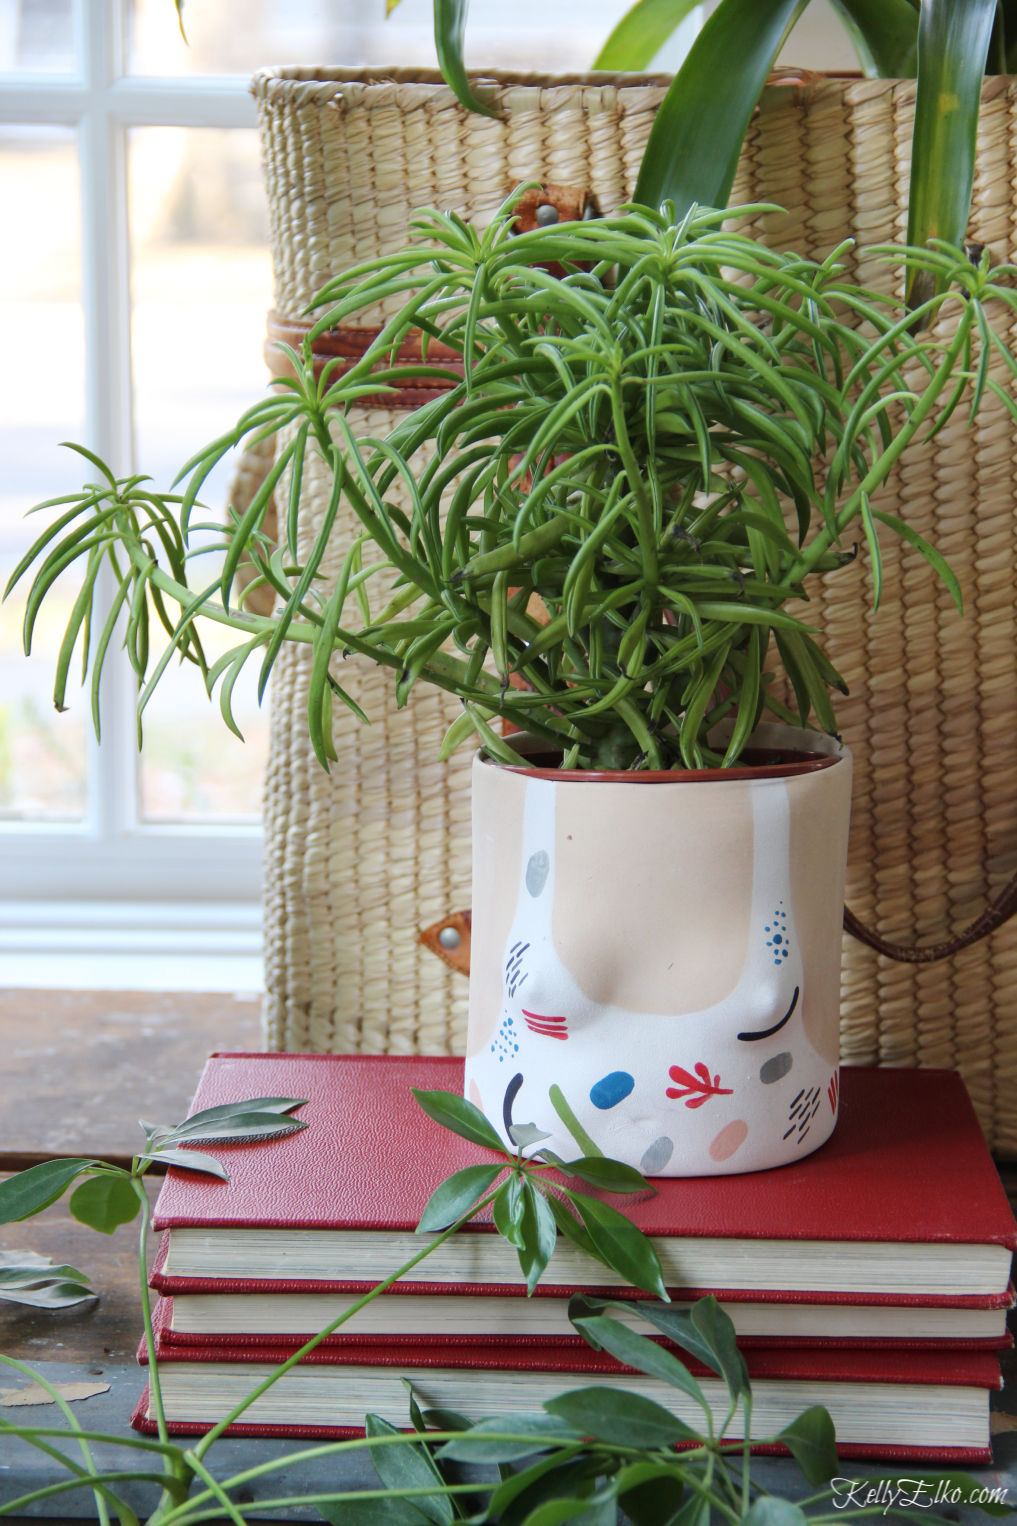 This bathing suit planter is so cute kellyelko.com #plants #planters #houseplants #jungalow #eclecticdecor